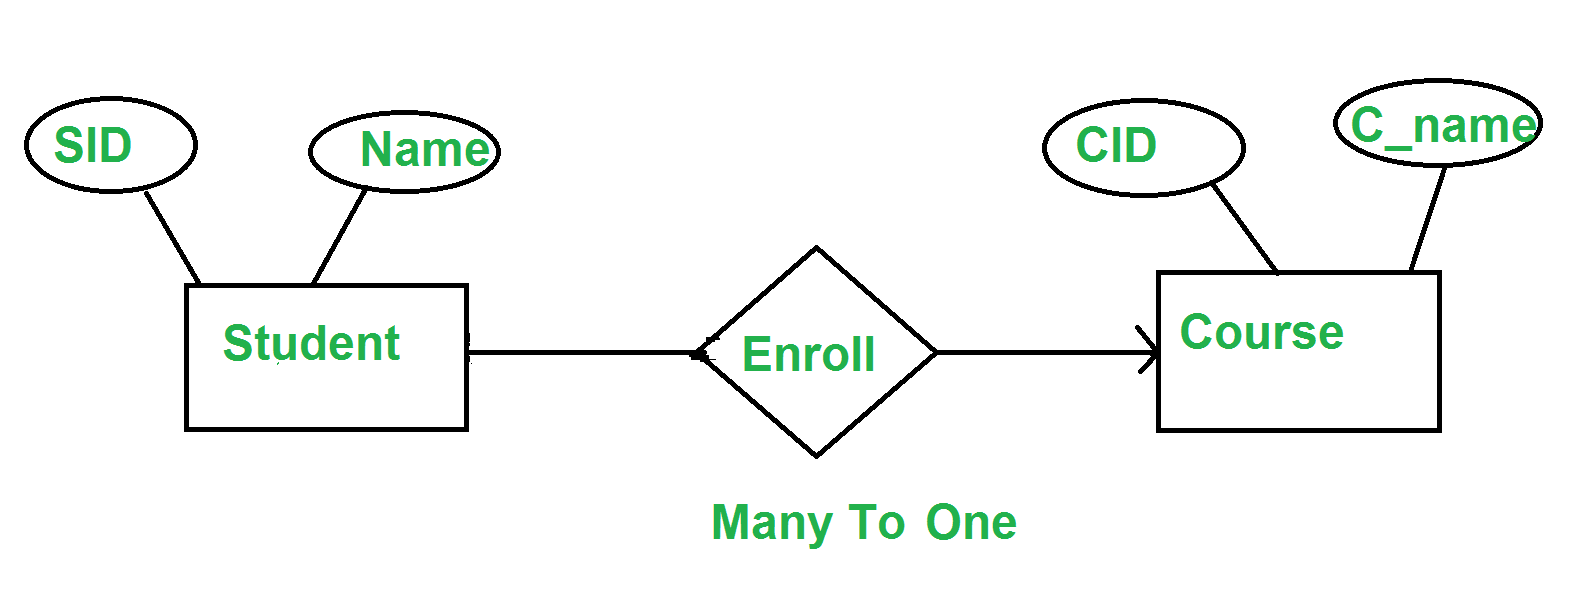 One To One Relationship Er Diagram